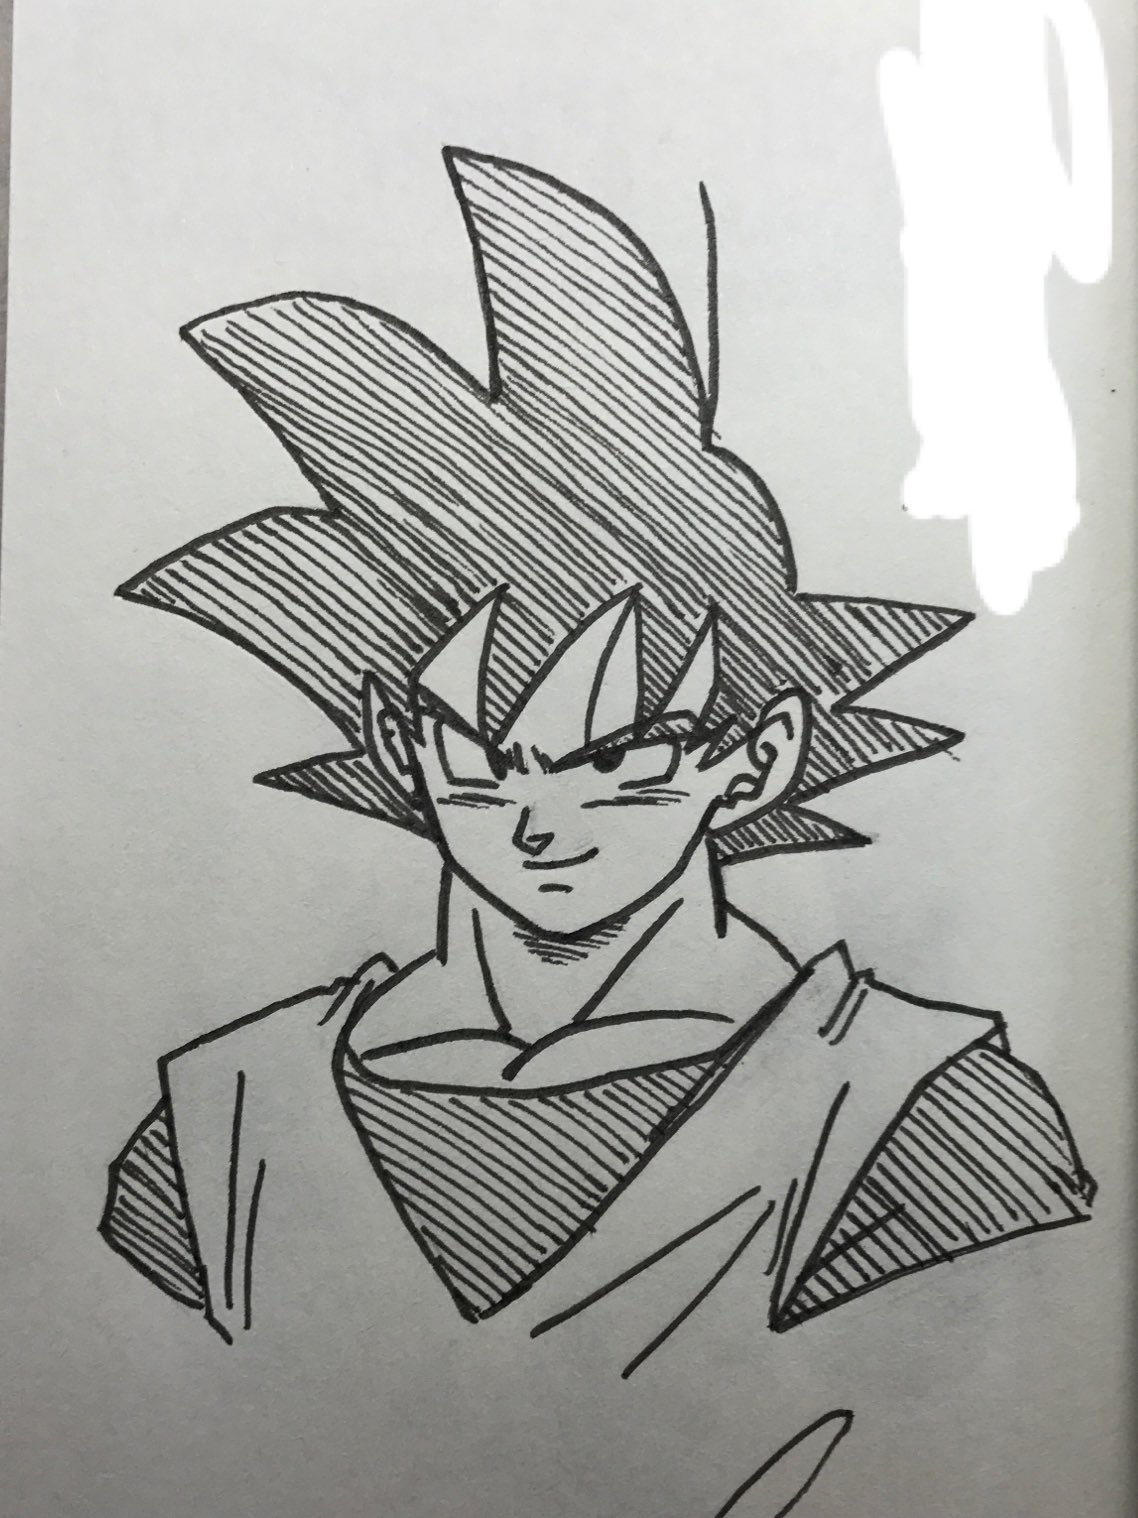 Goku by toyotaro in 2019 goku drawing dragon ball marvel